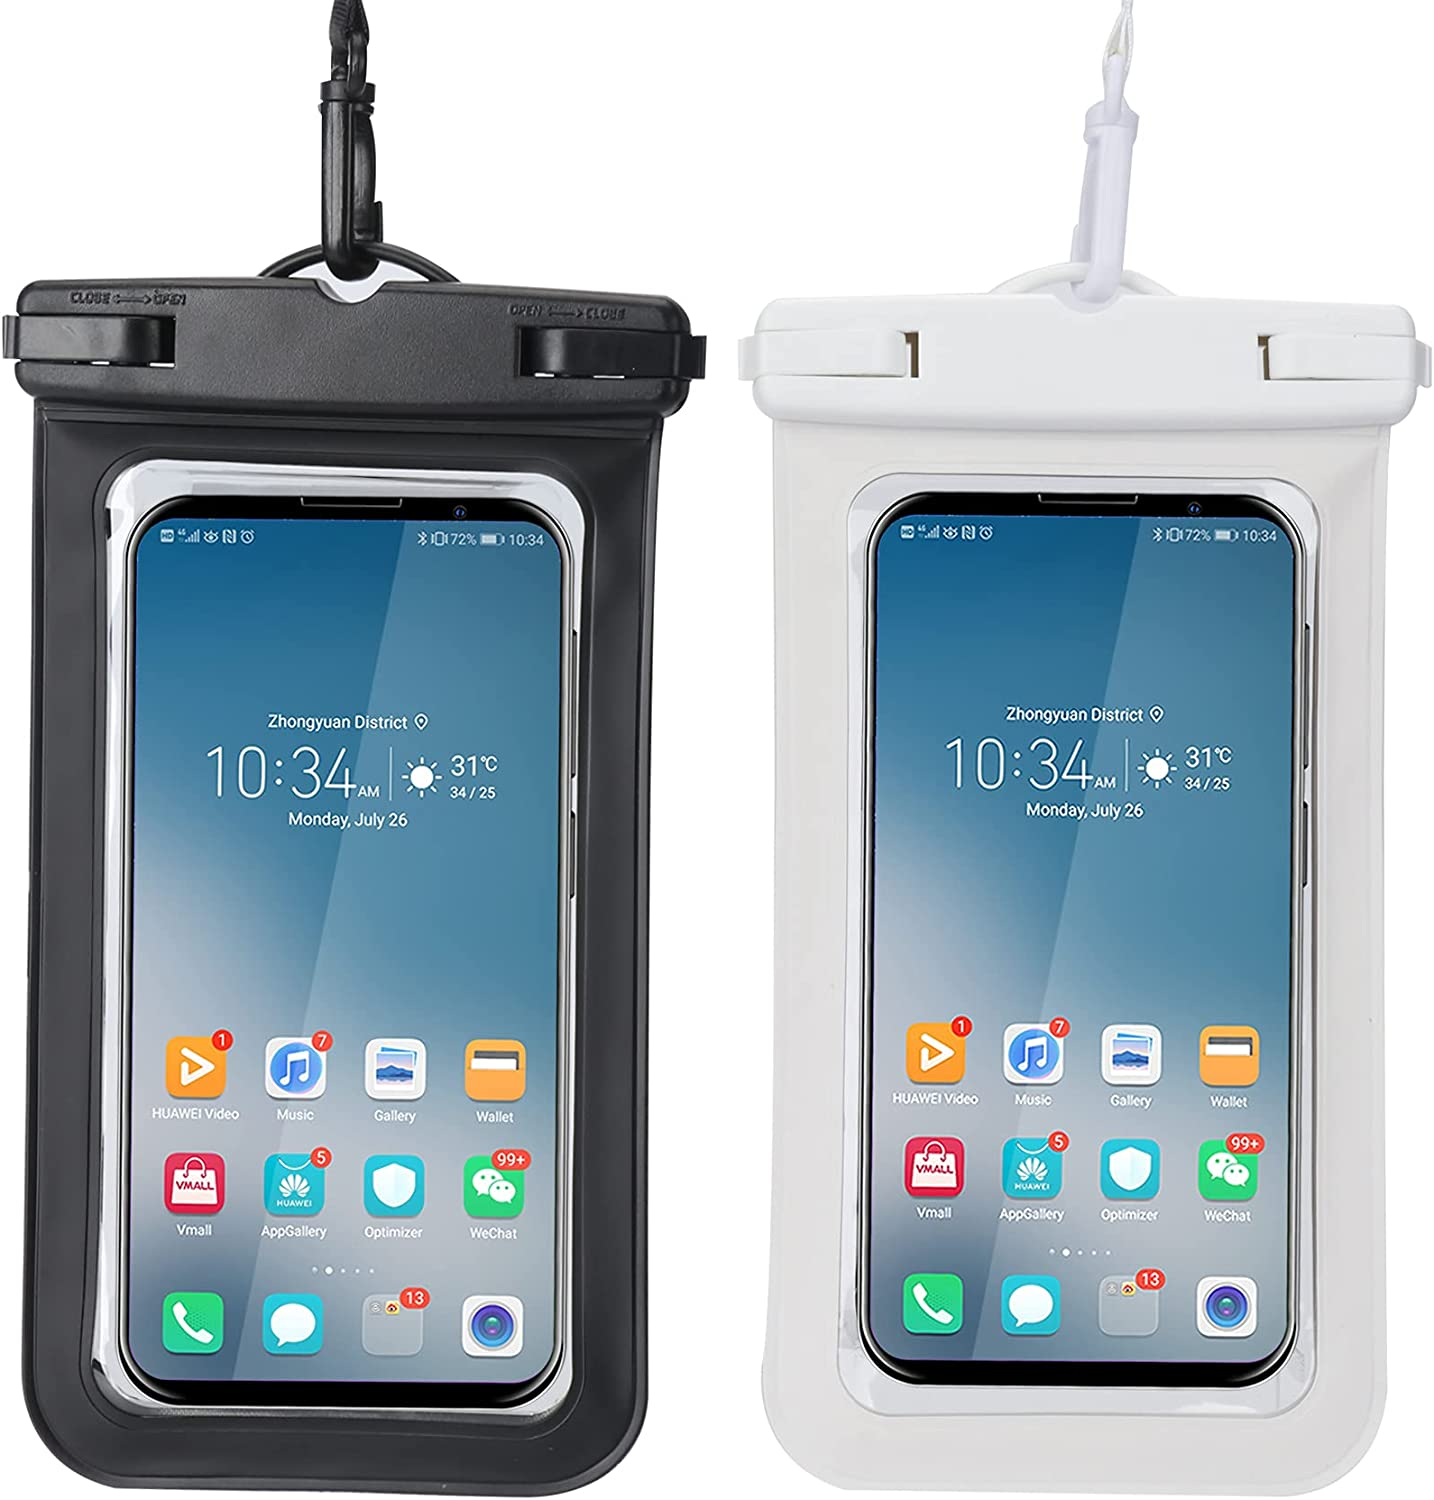 Universal Waterproof Phone Pouch, [2-Pack] Cell Phone Underwater Dry Bag Waterproof Case Compatible for 99.99% Smartphone in Market Up to 7 Inch Waterproof Phone Case for iPhone 12 11 SE XS XR X